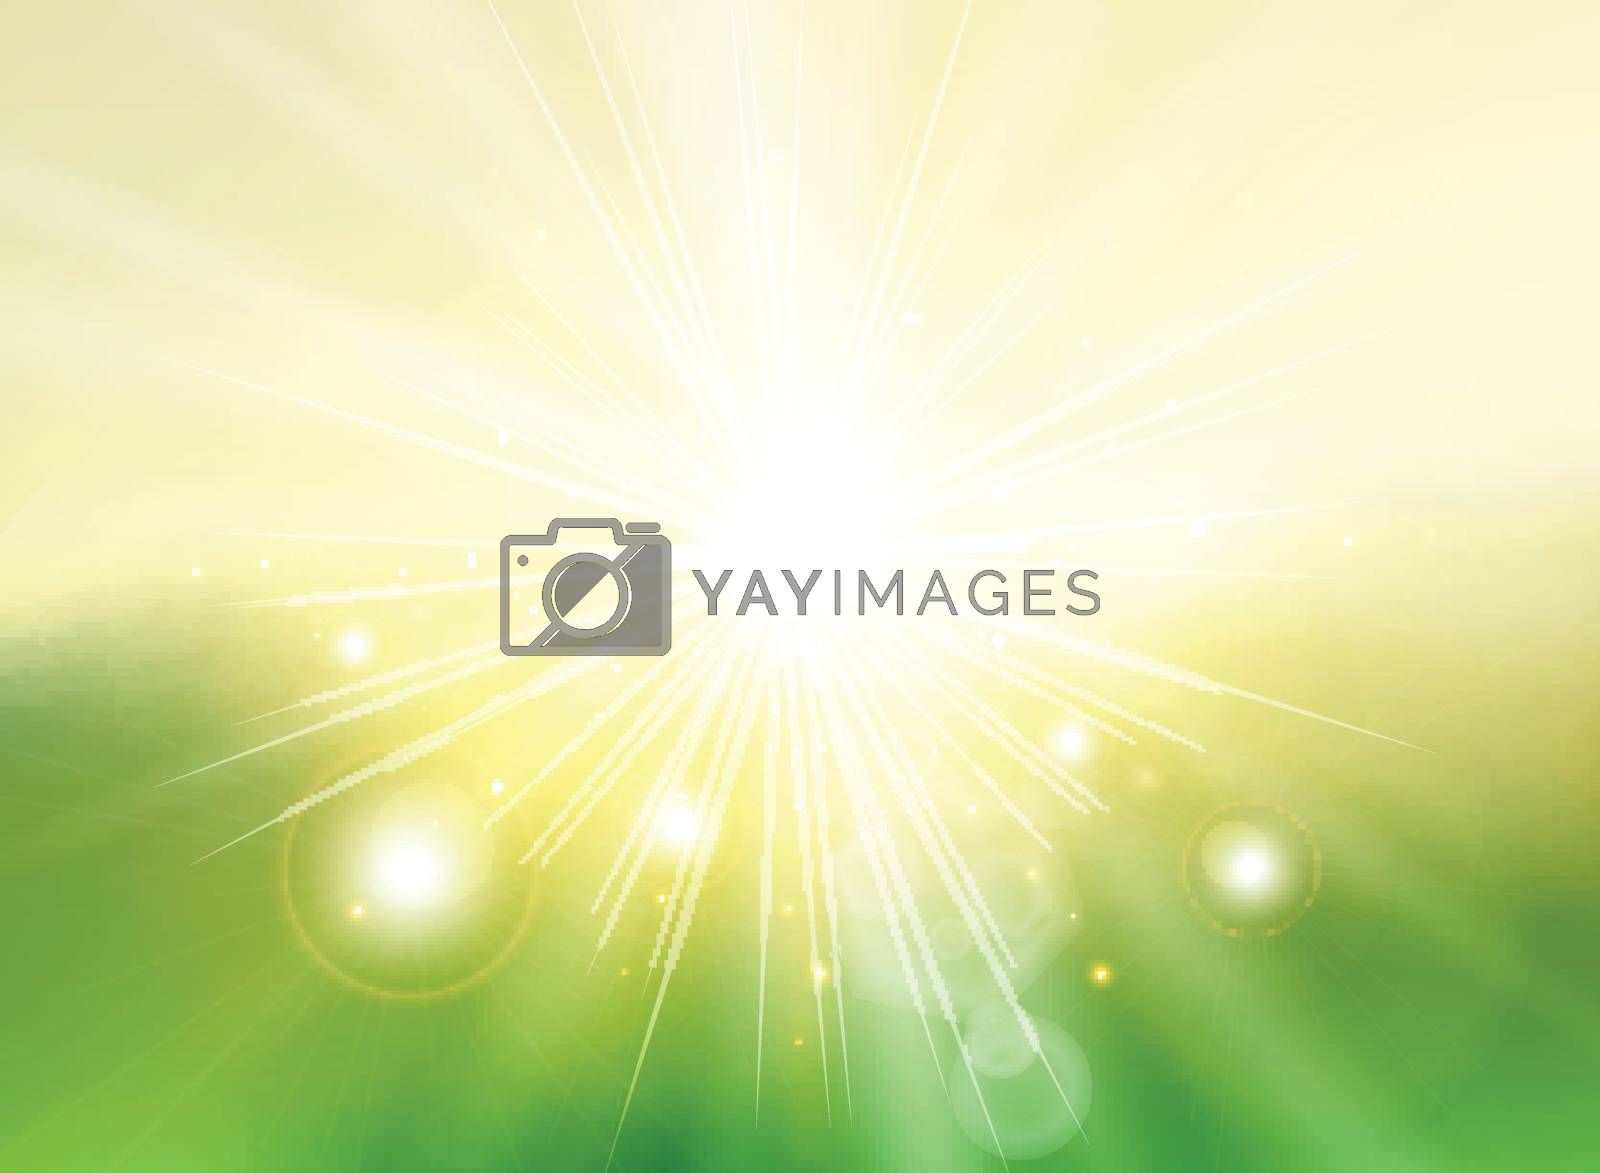 Sky with sunlight rays twilight blurred green gradient abstract background landscape. Spring summer. Vector illustration